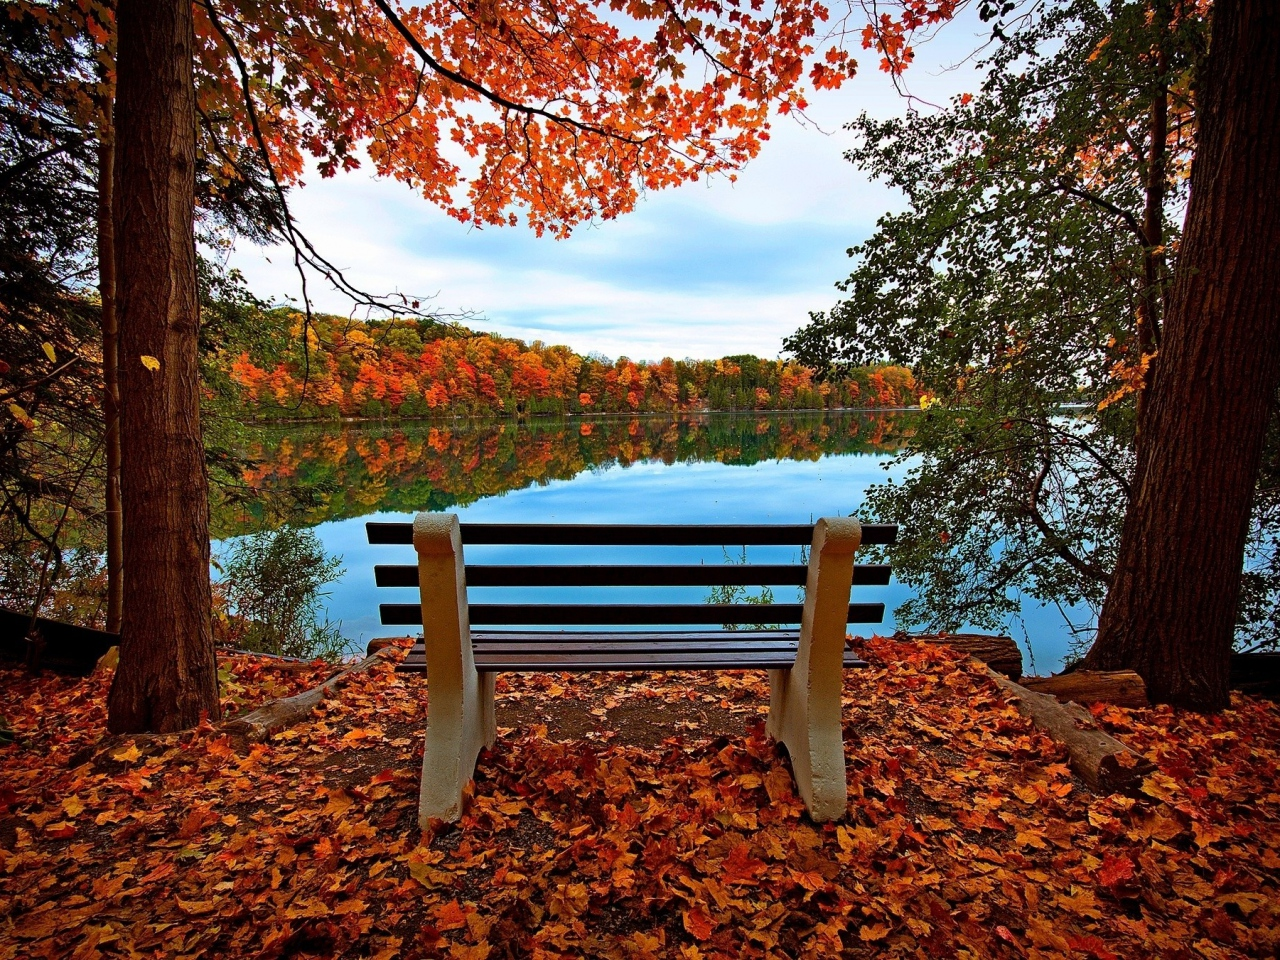 bench-autumn-river-lake-trees